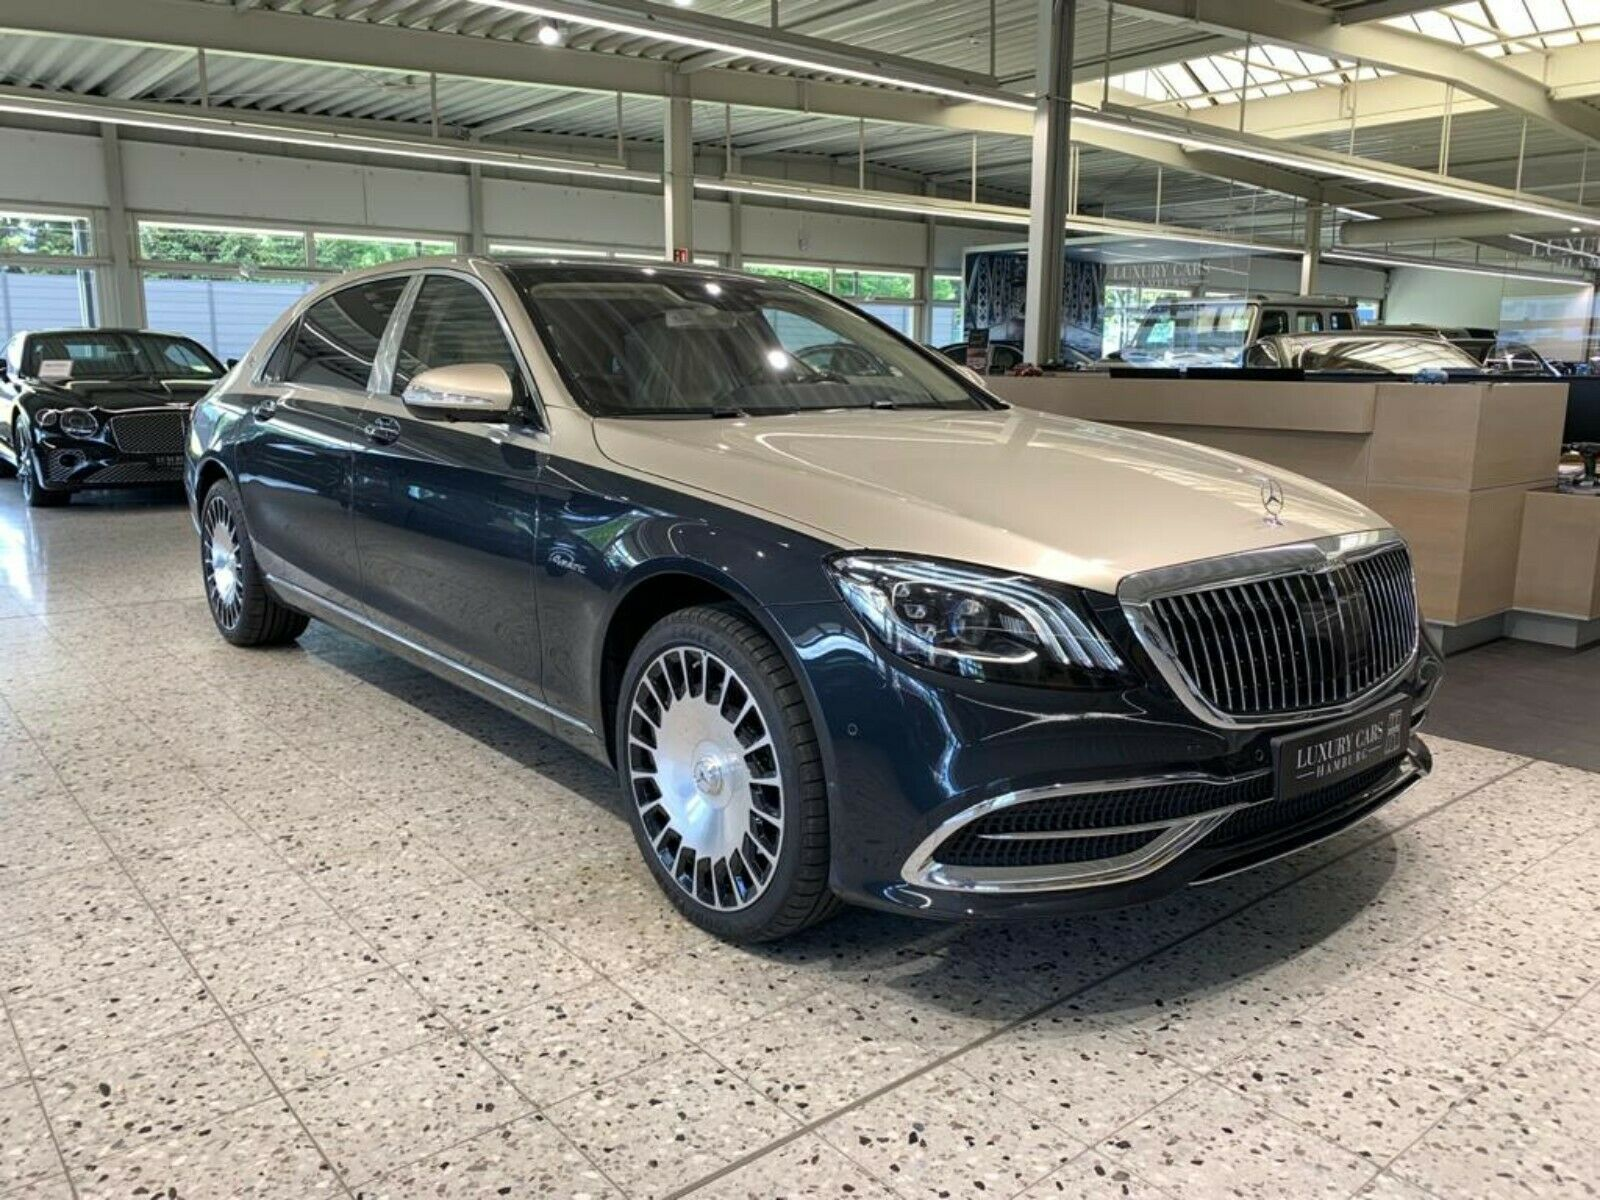 For Sale 2020 Mercedes Maybach S 560 Luxury Cars Hamburg Germany For Sale On Luxurypulse Mercedes Maybach Maybach Luxury Cars